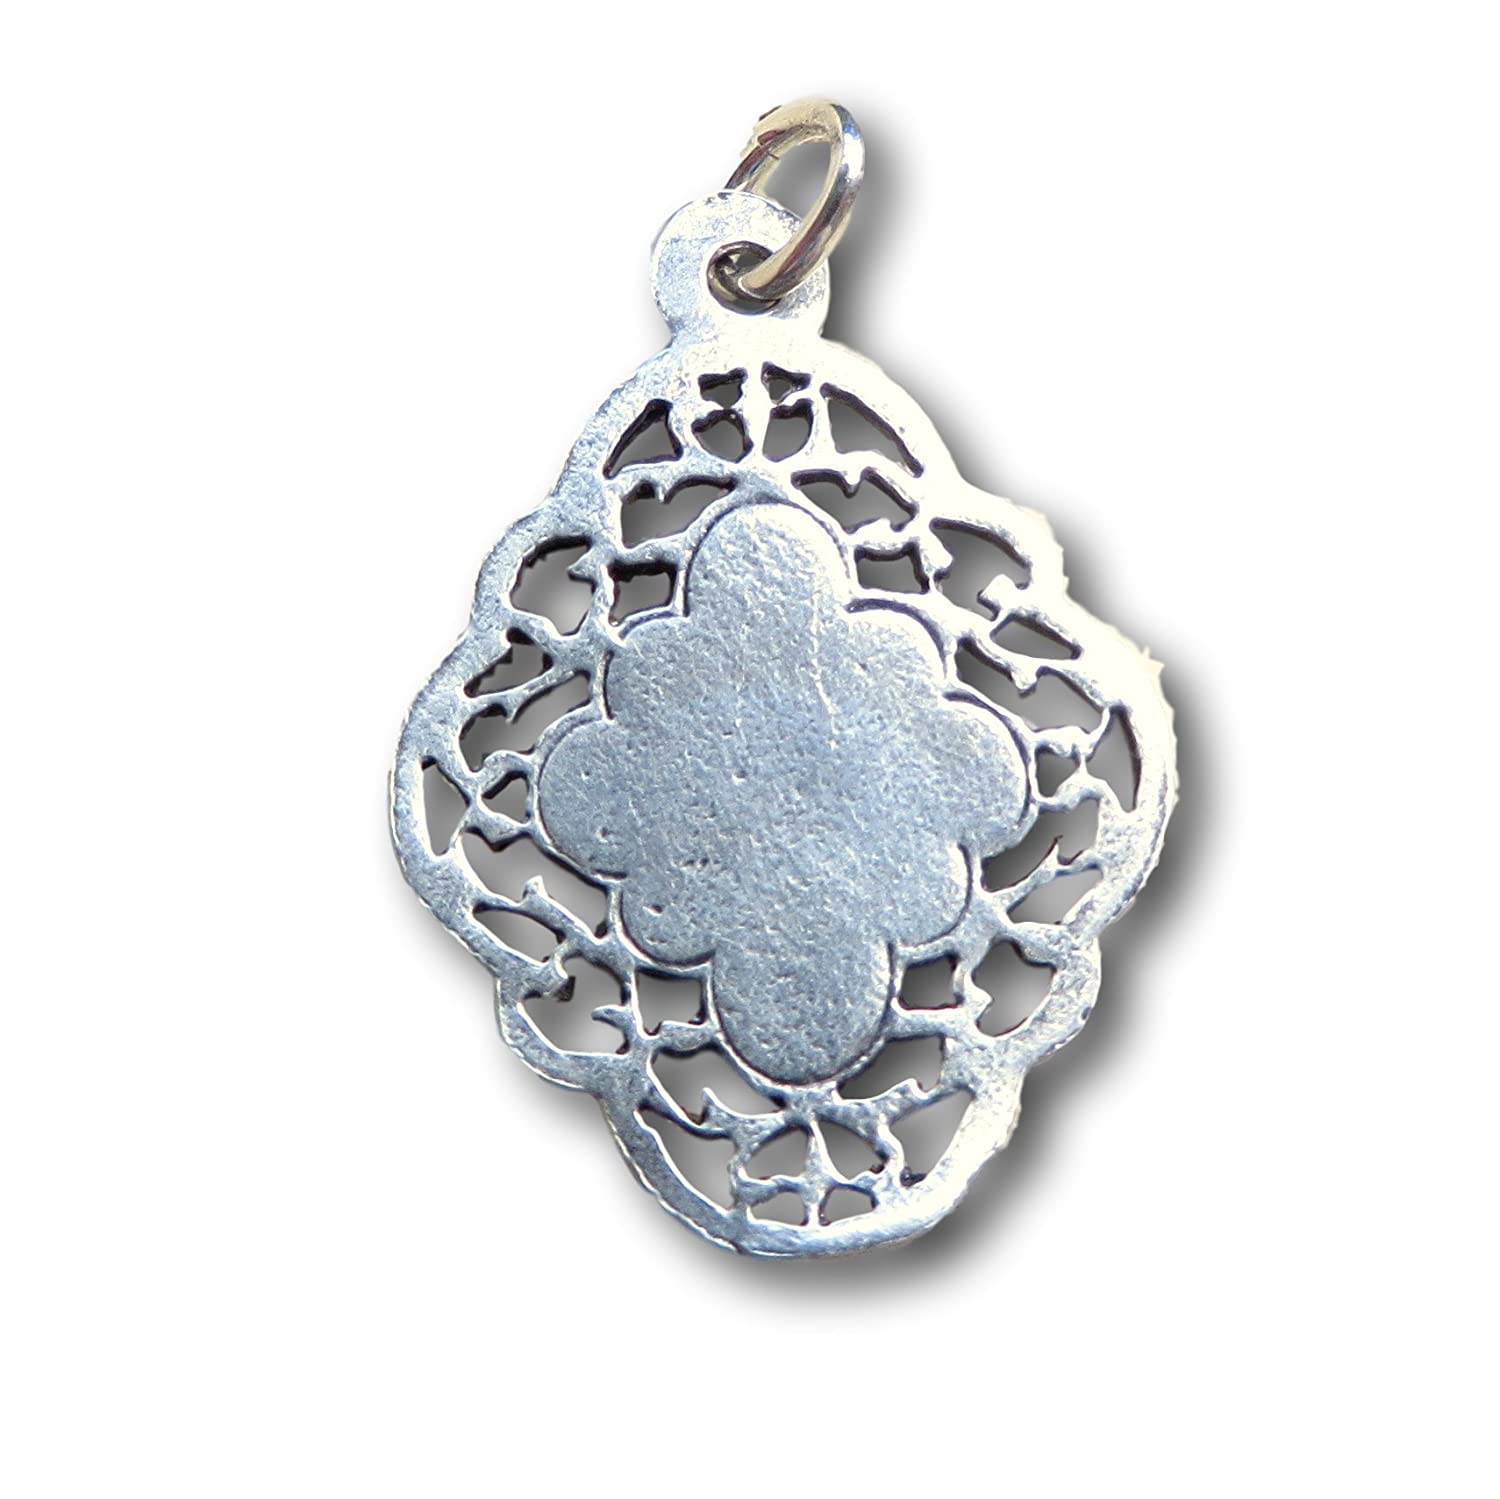 Antique Reproduction Sterling Silver Antique-Style First Communion Medal